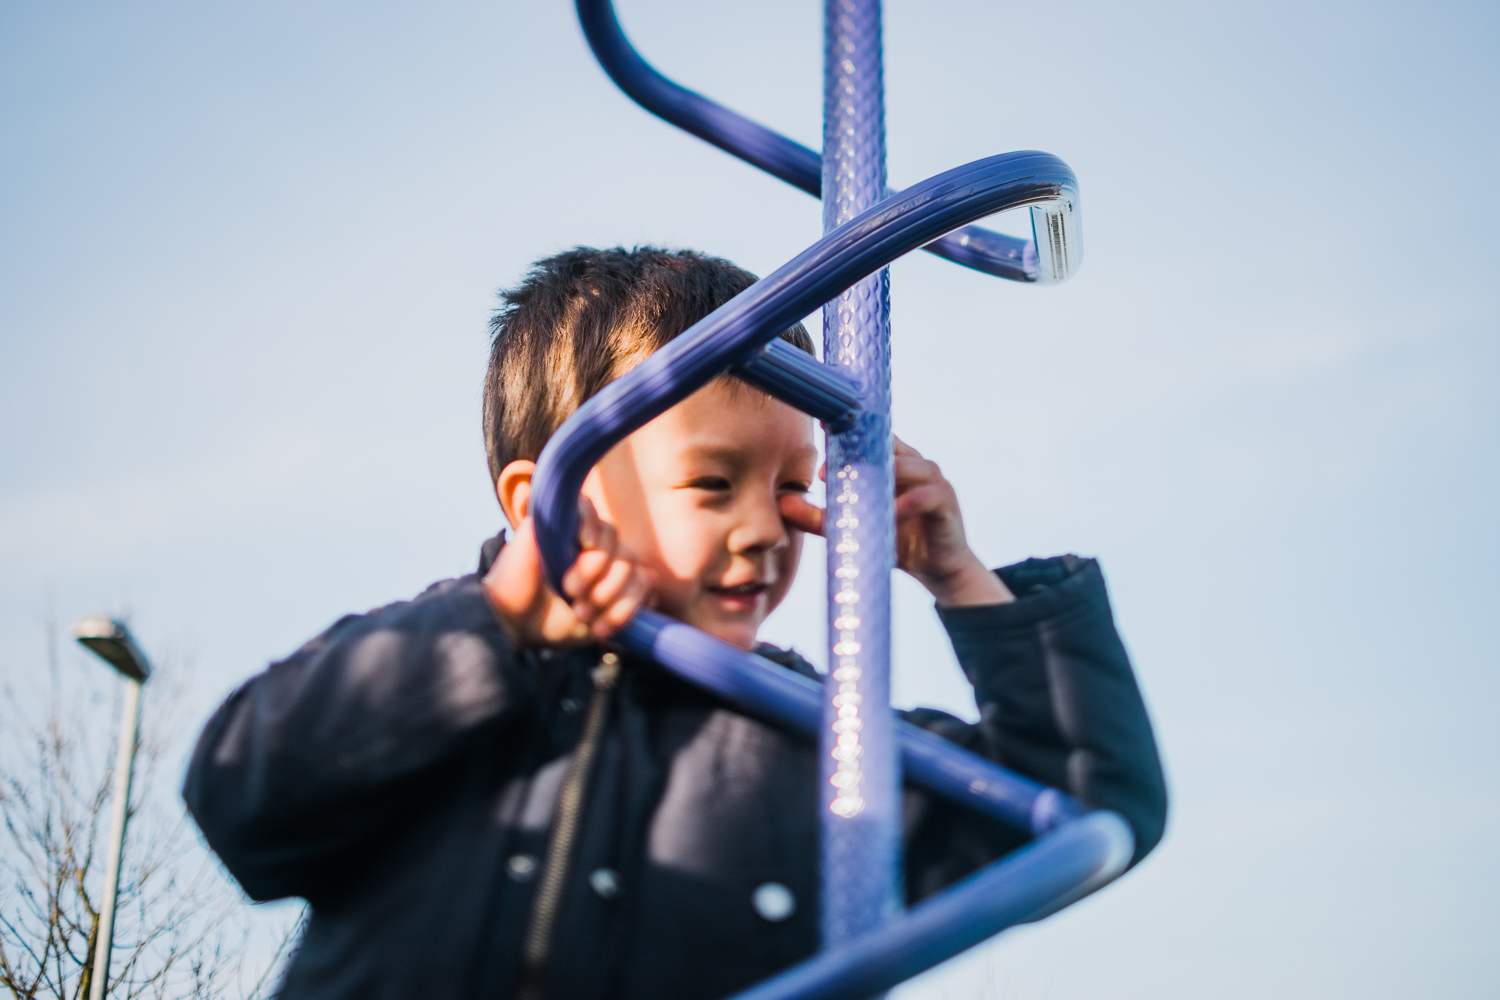 A child on the lookout on the playground pole equipment